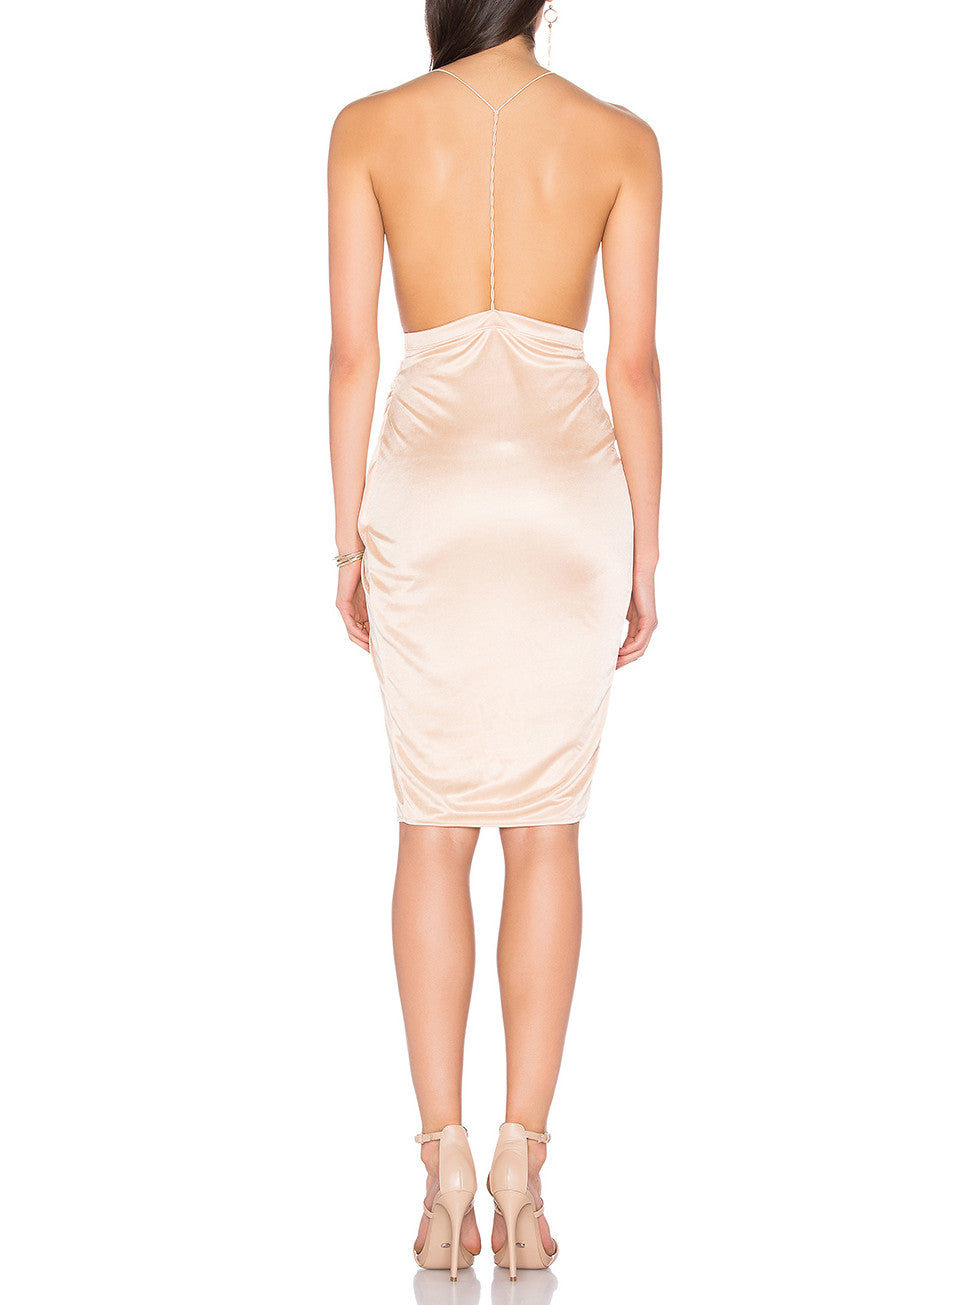 Carrie Wrap Dress - PRADEGAL